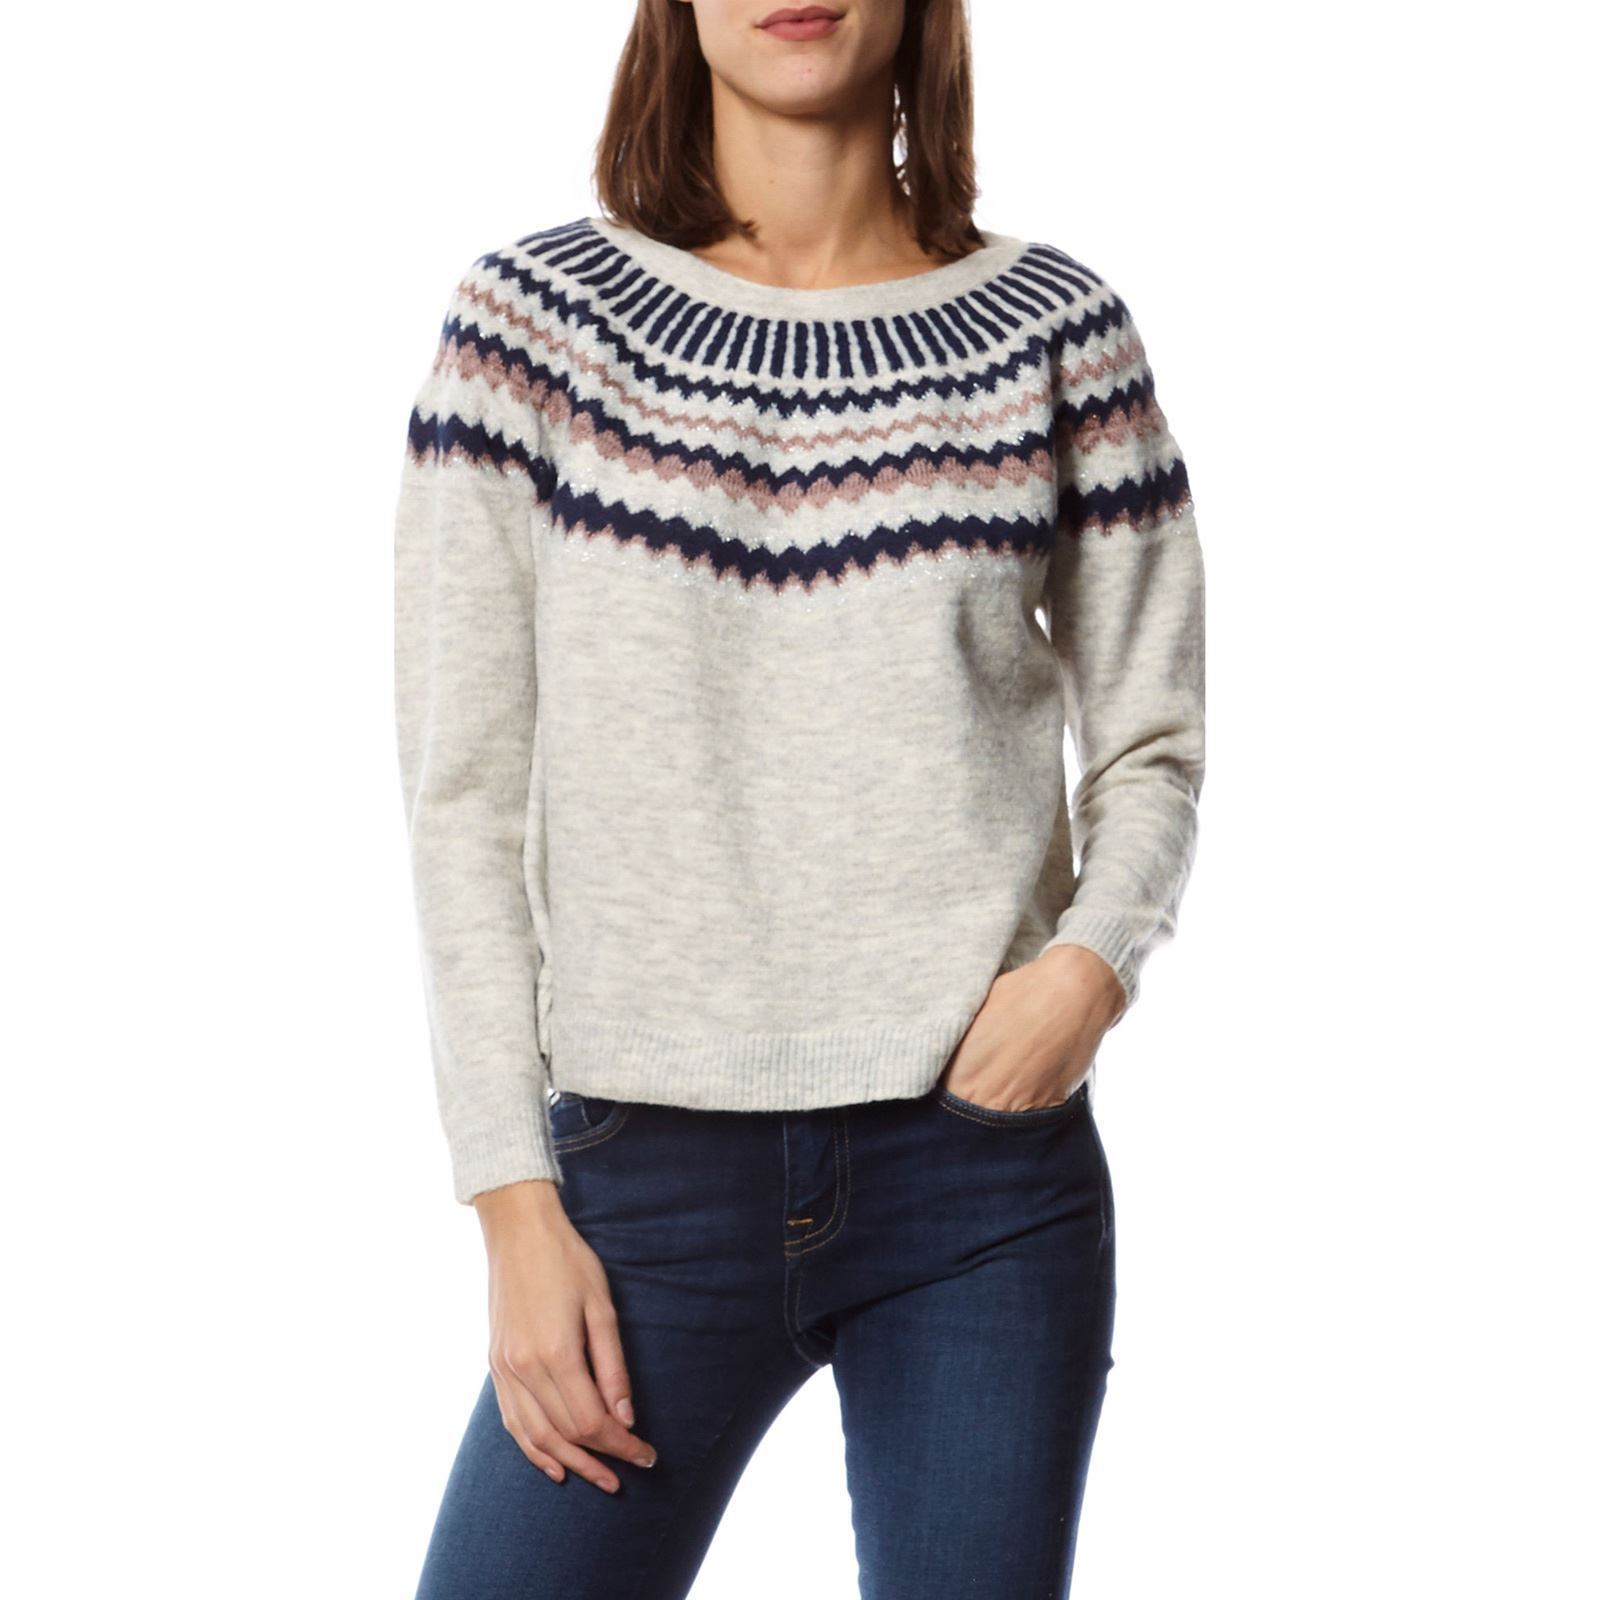 Only Only Clair V Only PullGris Clair Clair Femme PullGris Femme V PullGris Femme zMpqGSUV